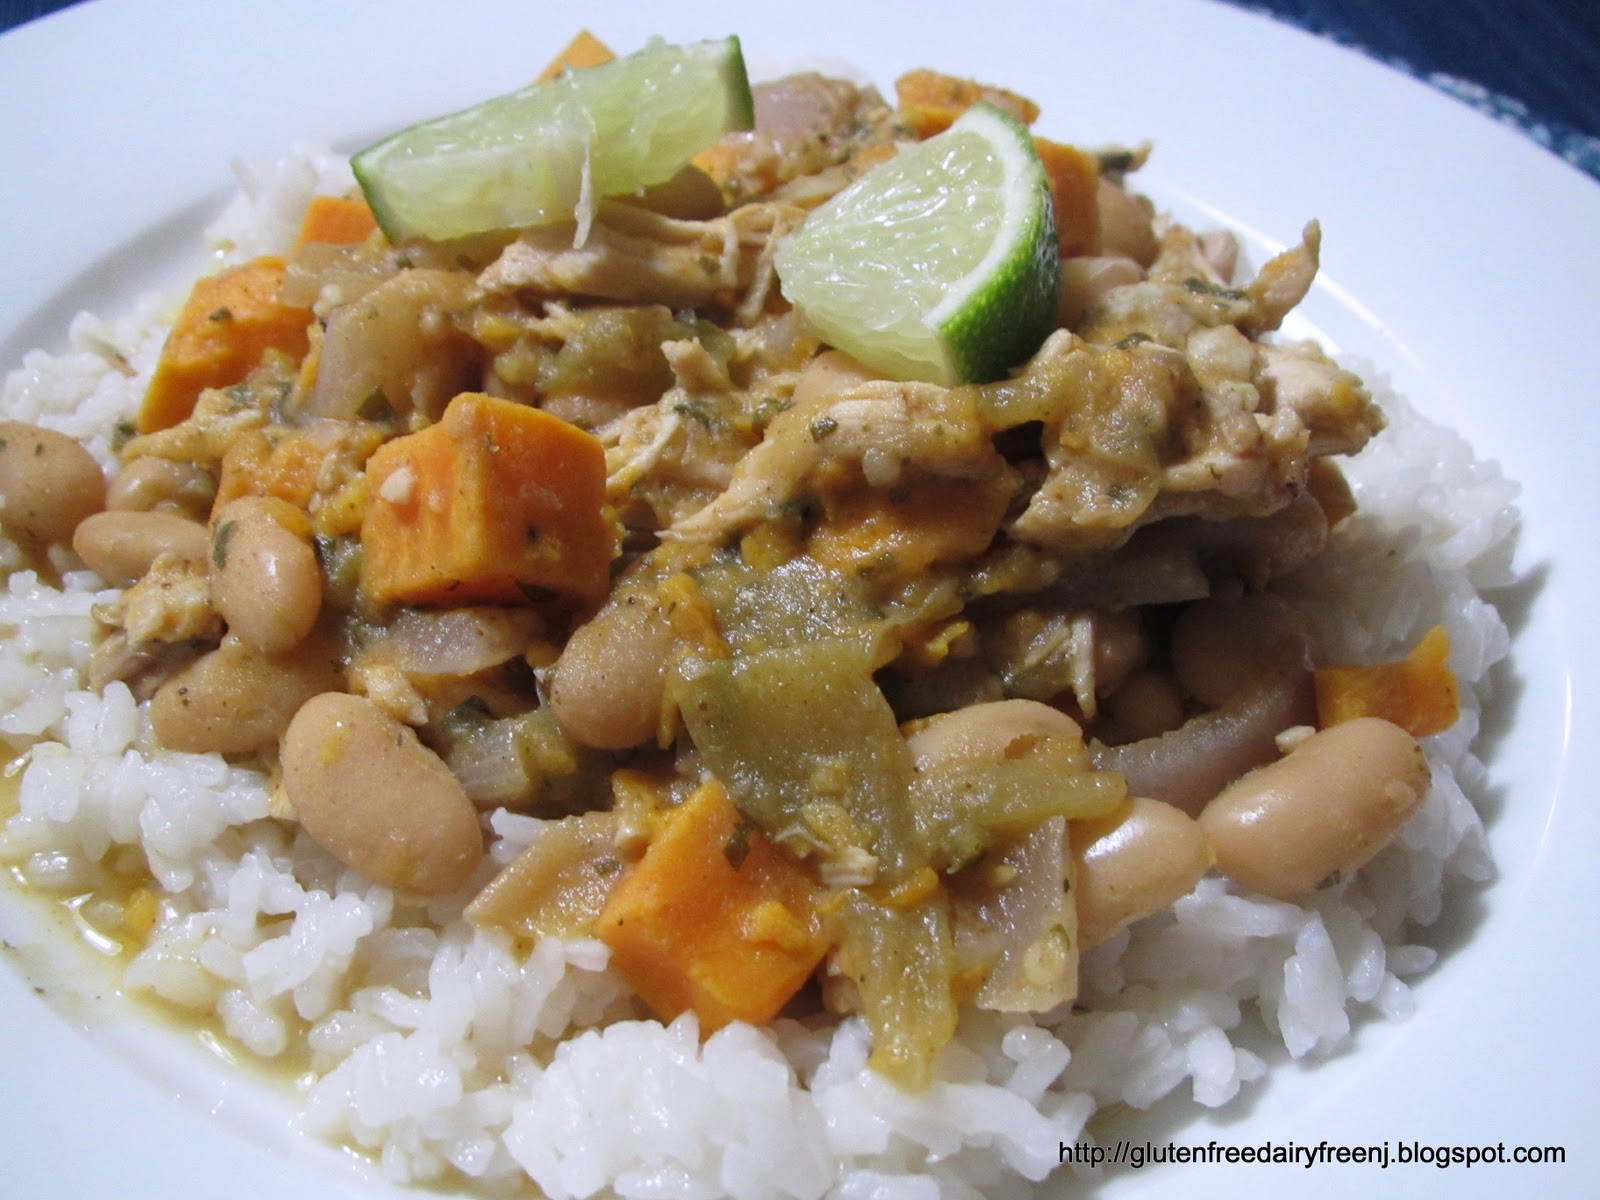 Karina's Chicken Chili with White Beans, Sweet Potato, and Lime